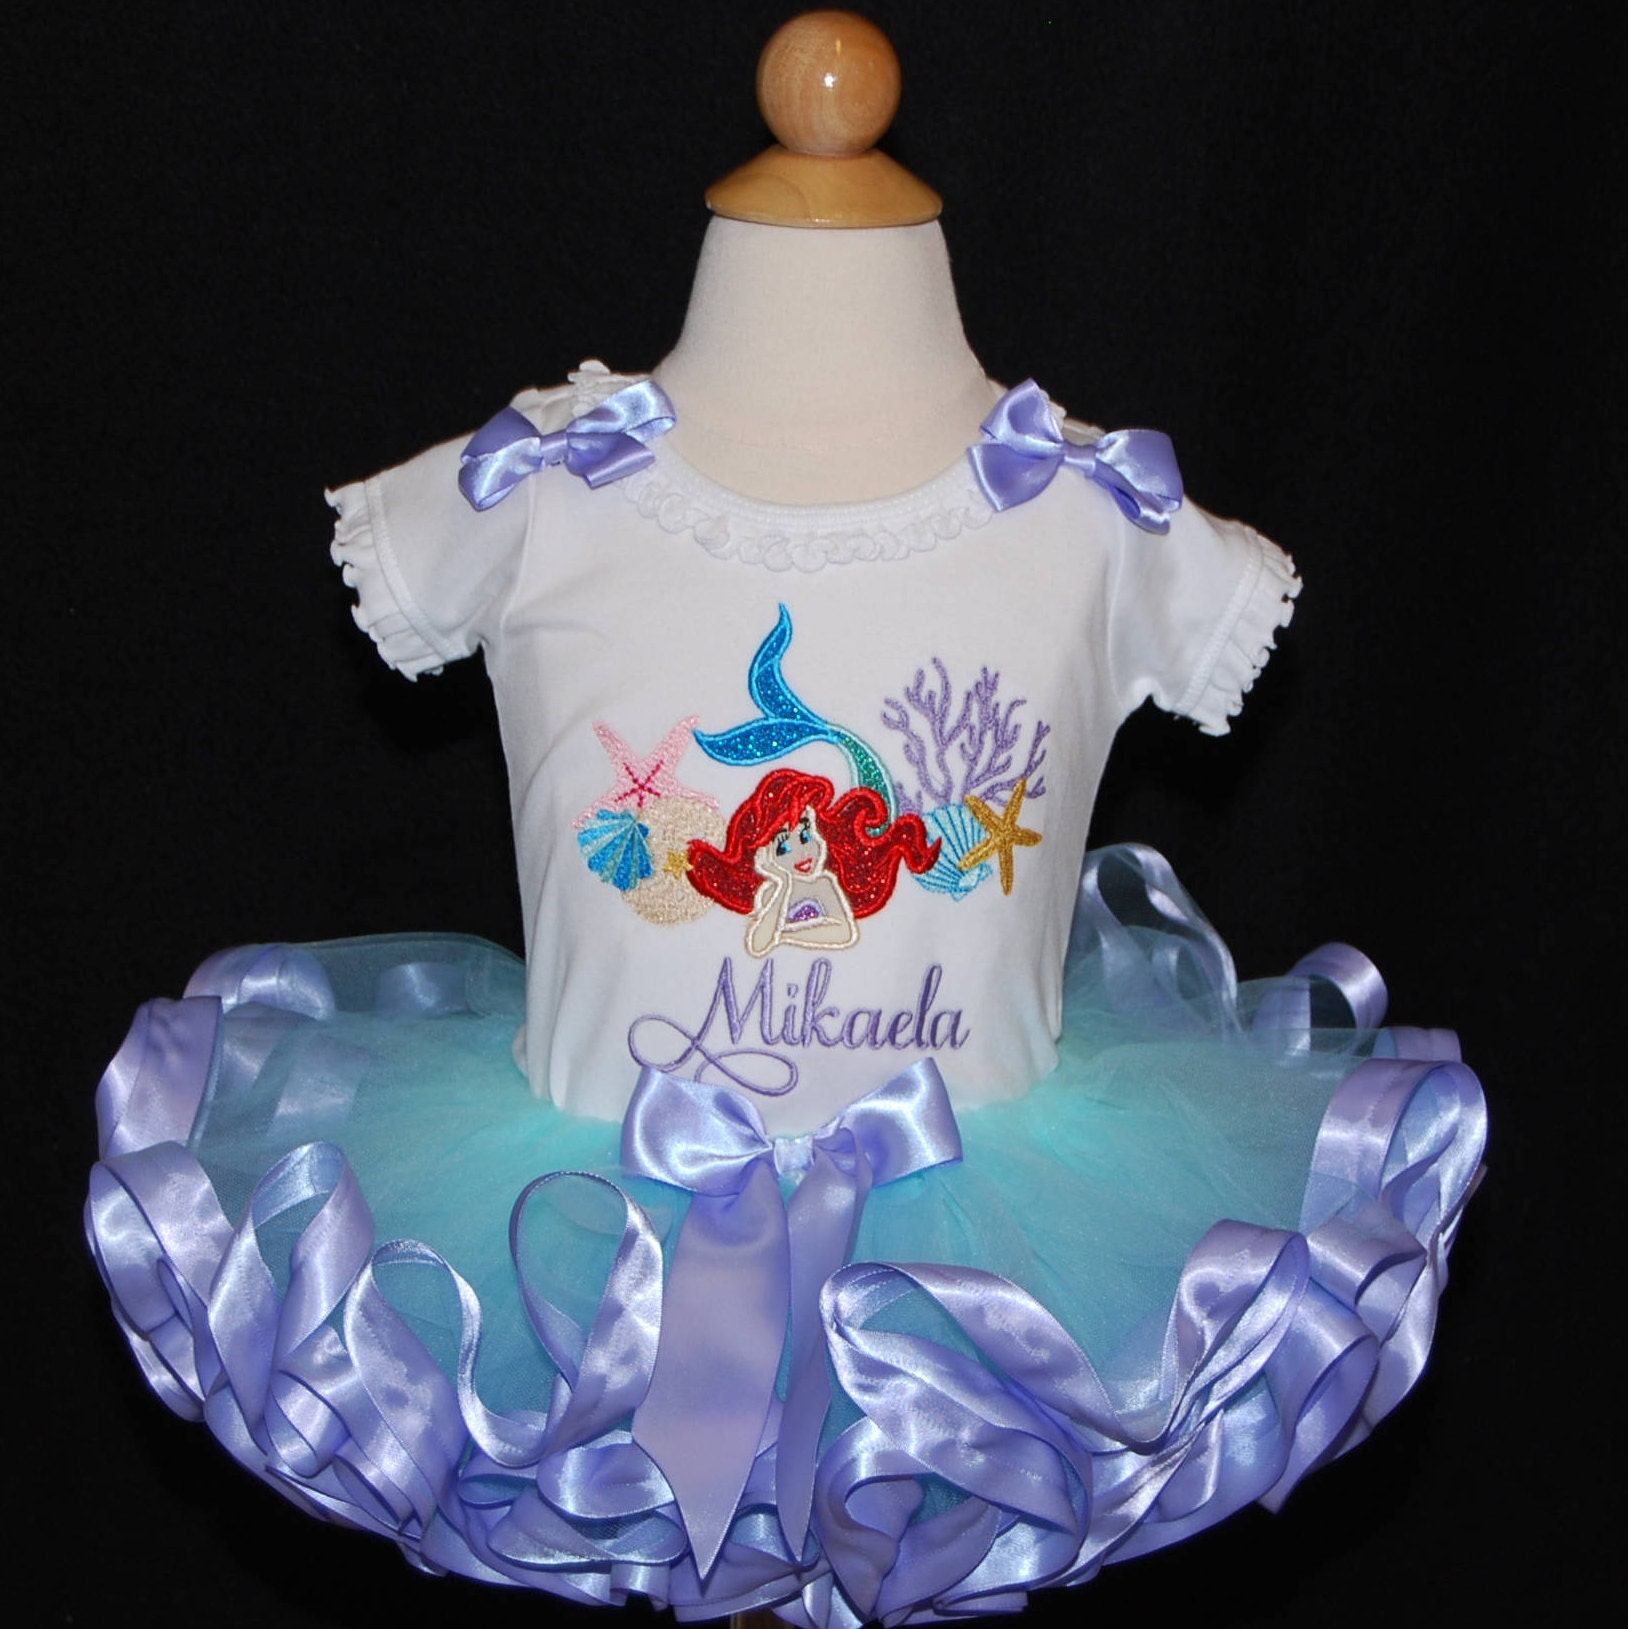 little mermaid birthday tutu outfit Ariel birthday outfit cake smash outfit girl under the sea tutu set ocean theme mermaid tutu dress girl